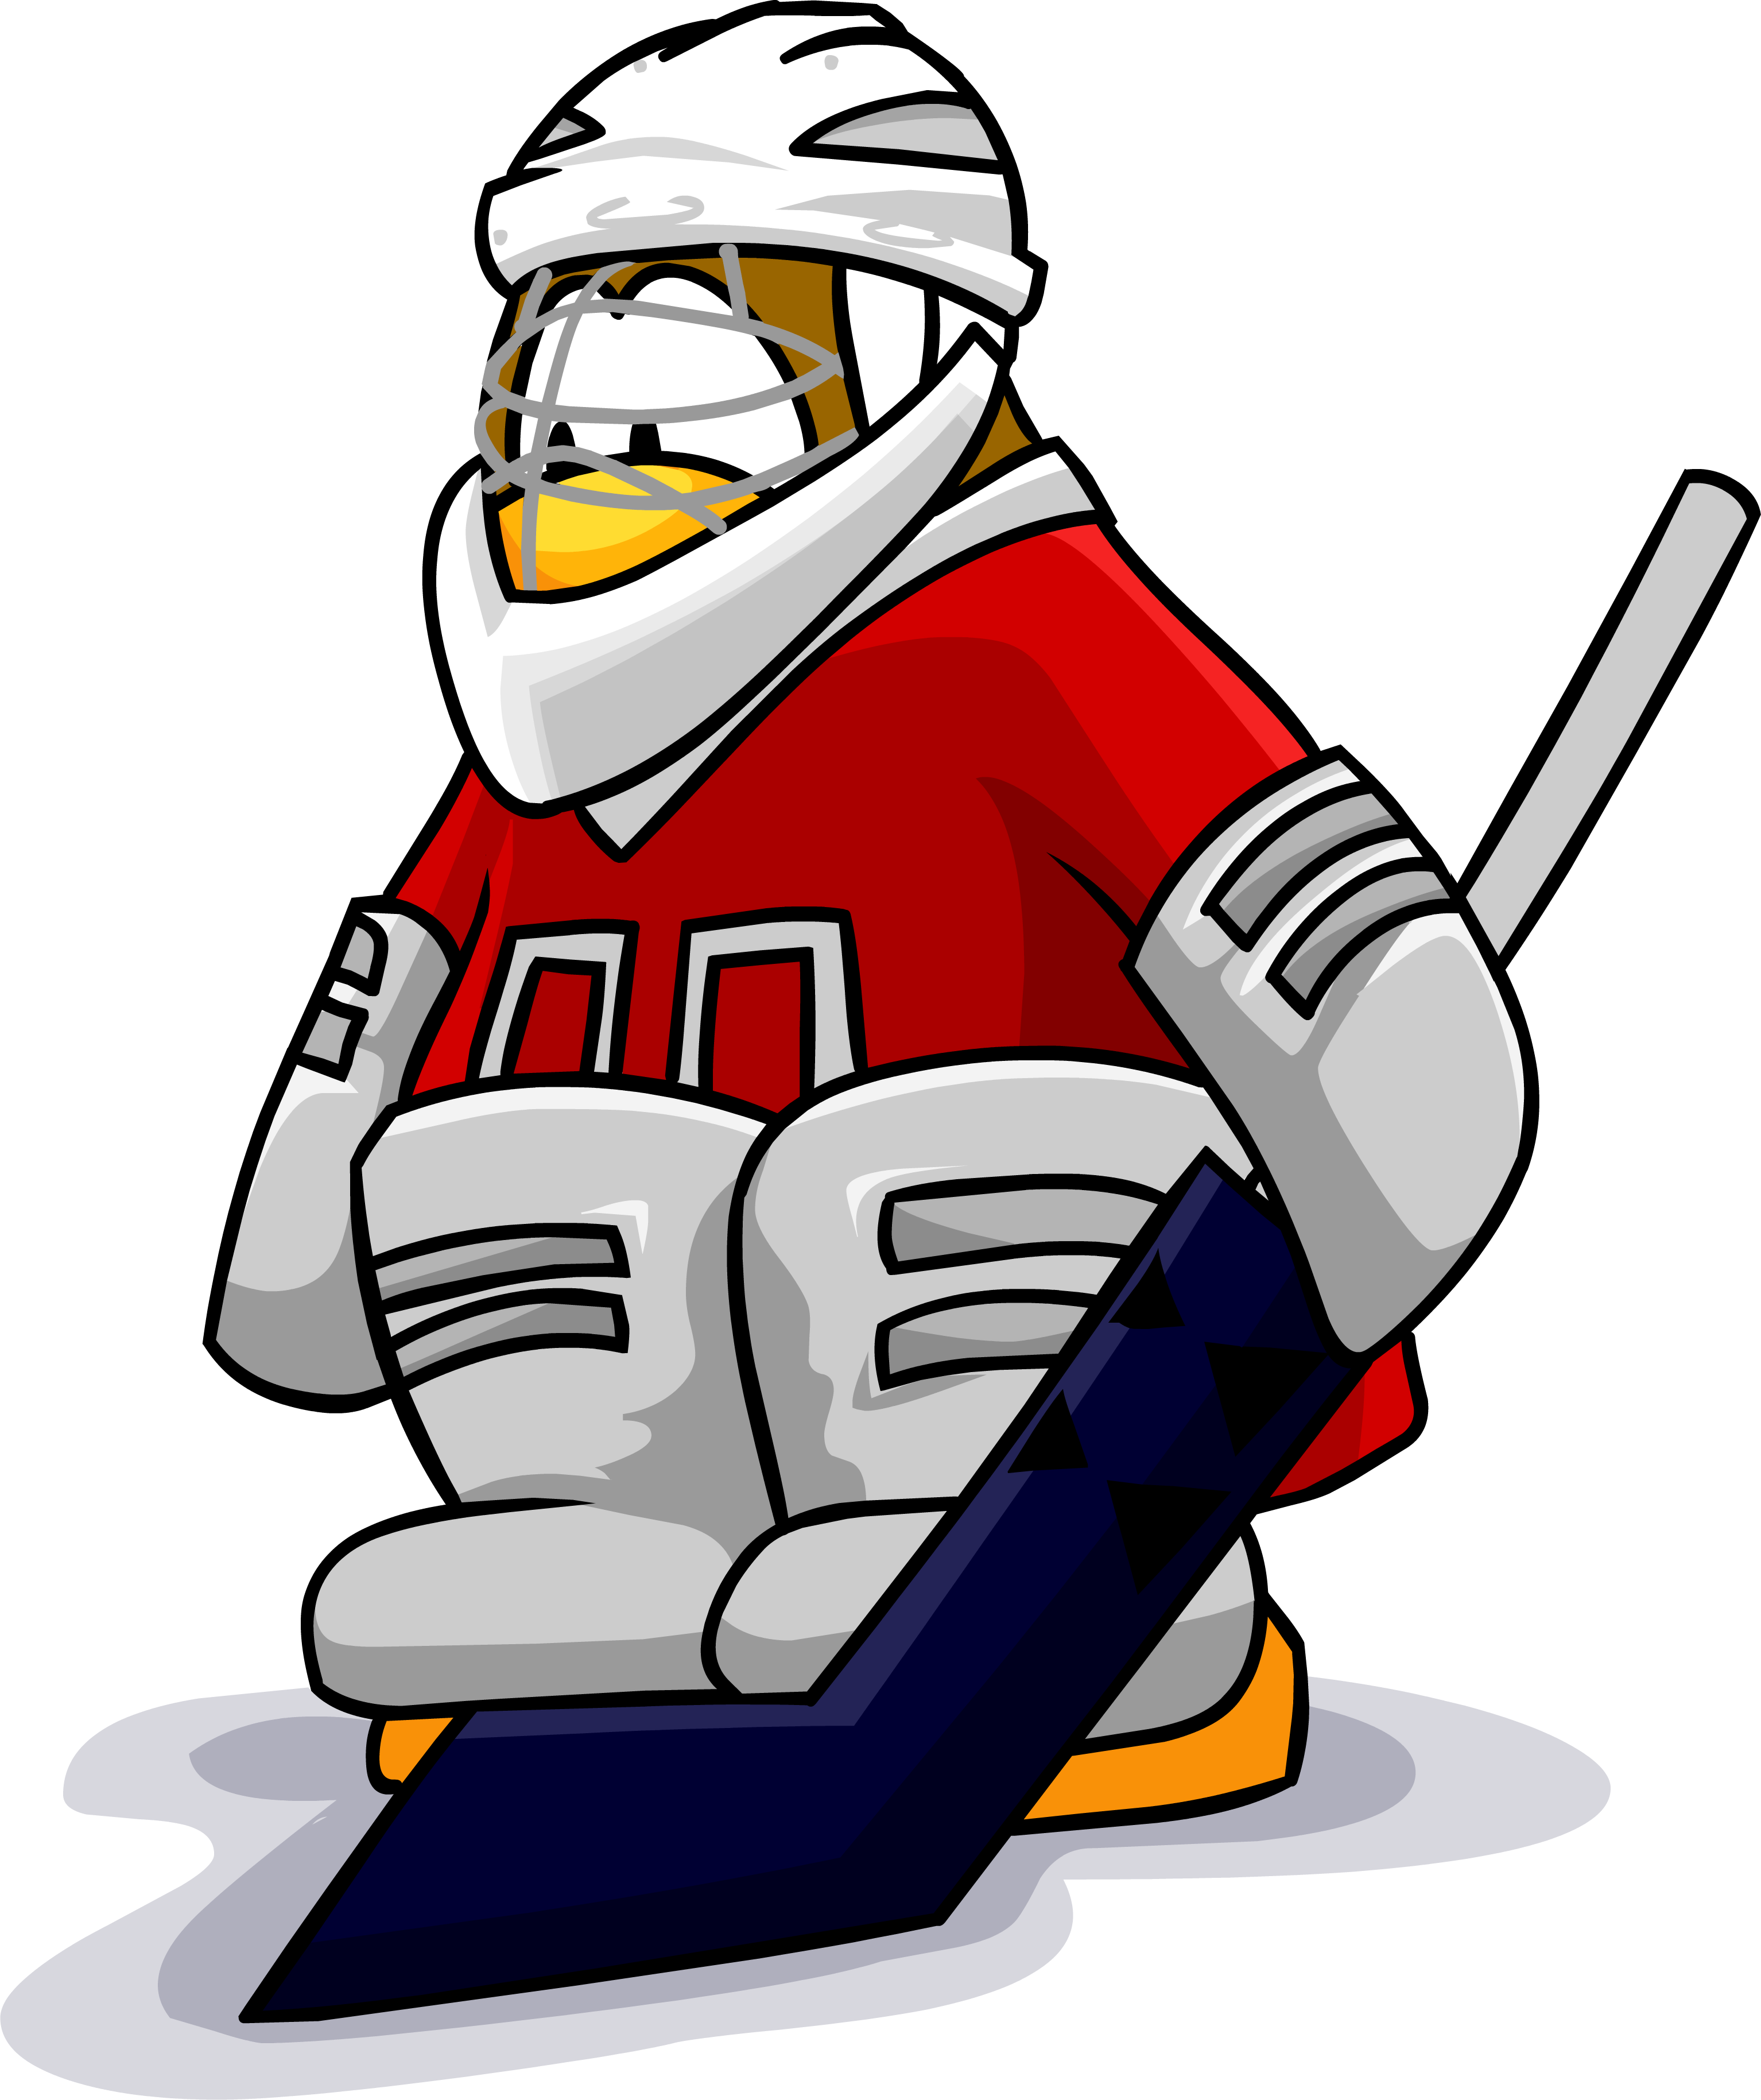 Ice basketball clipart graphic freeuse download Ice Hockey Goalie Clipart at GetDrawings.com   Free for personal use ... graphic freeuse download